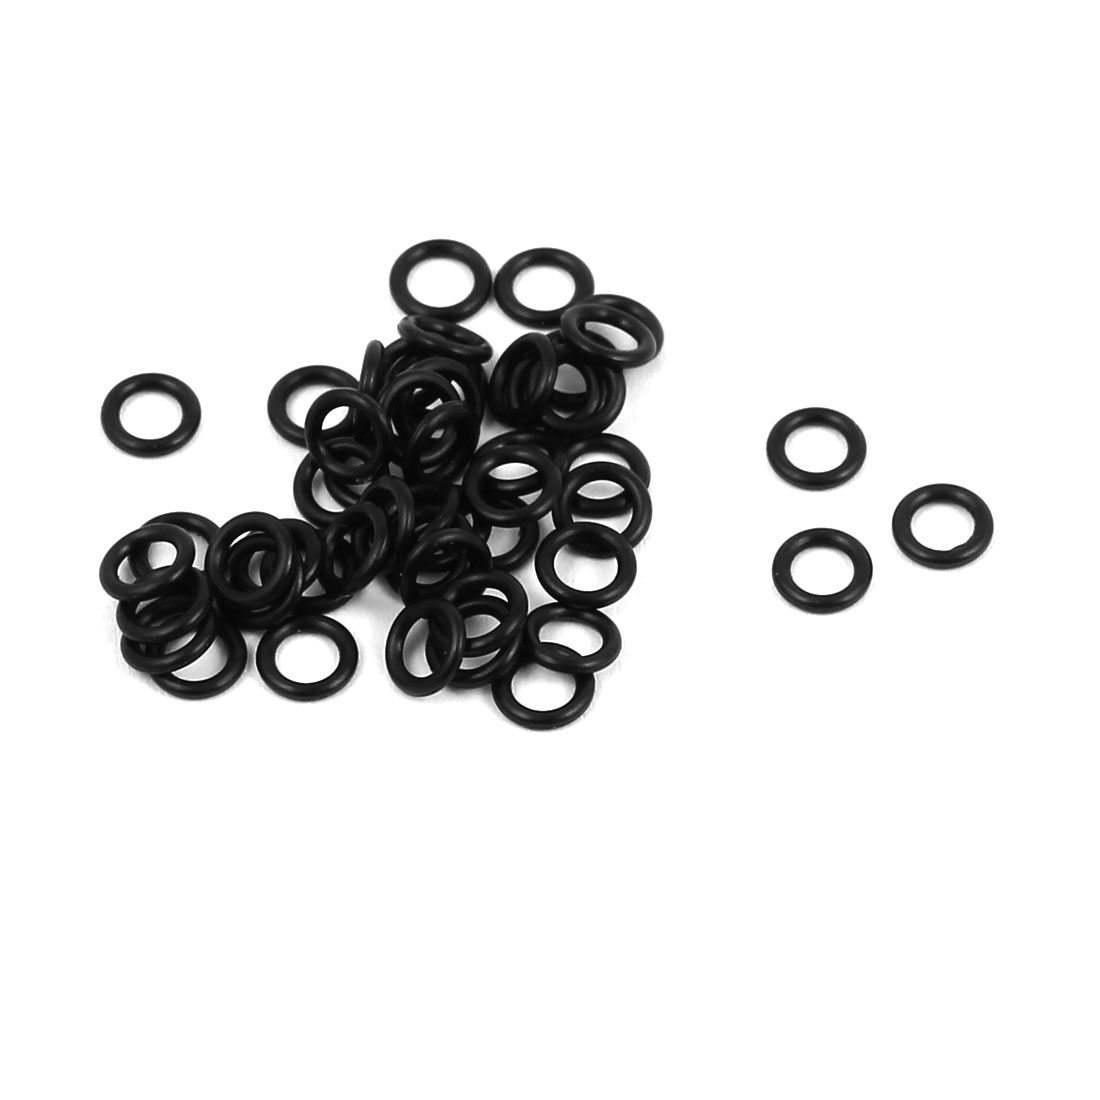 50Pcs Black 2.7mm x 0.8mm Nitrile Rubber O Ring NBR Oil Sealing Grommets